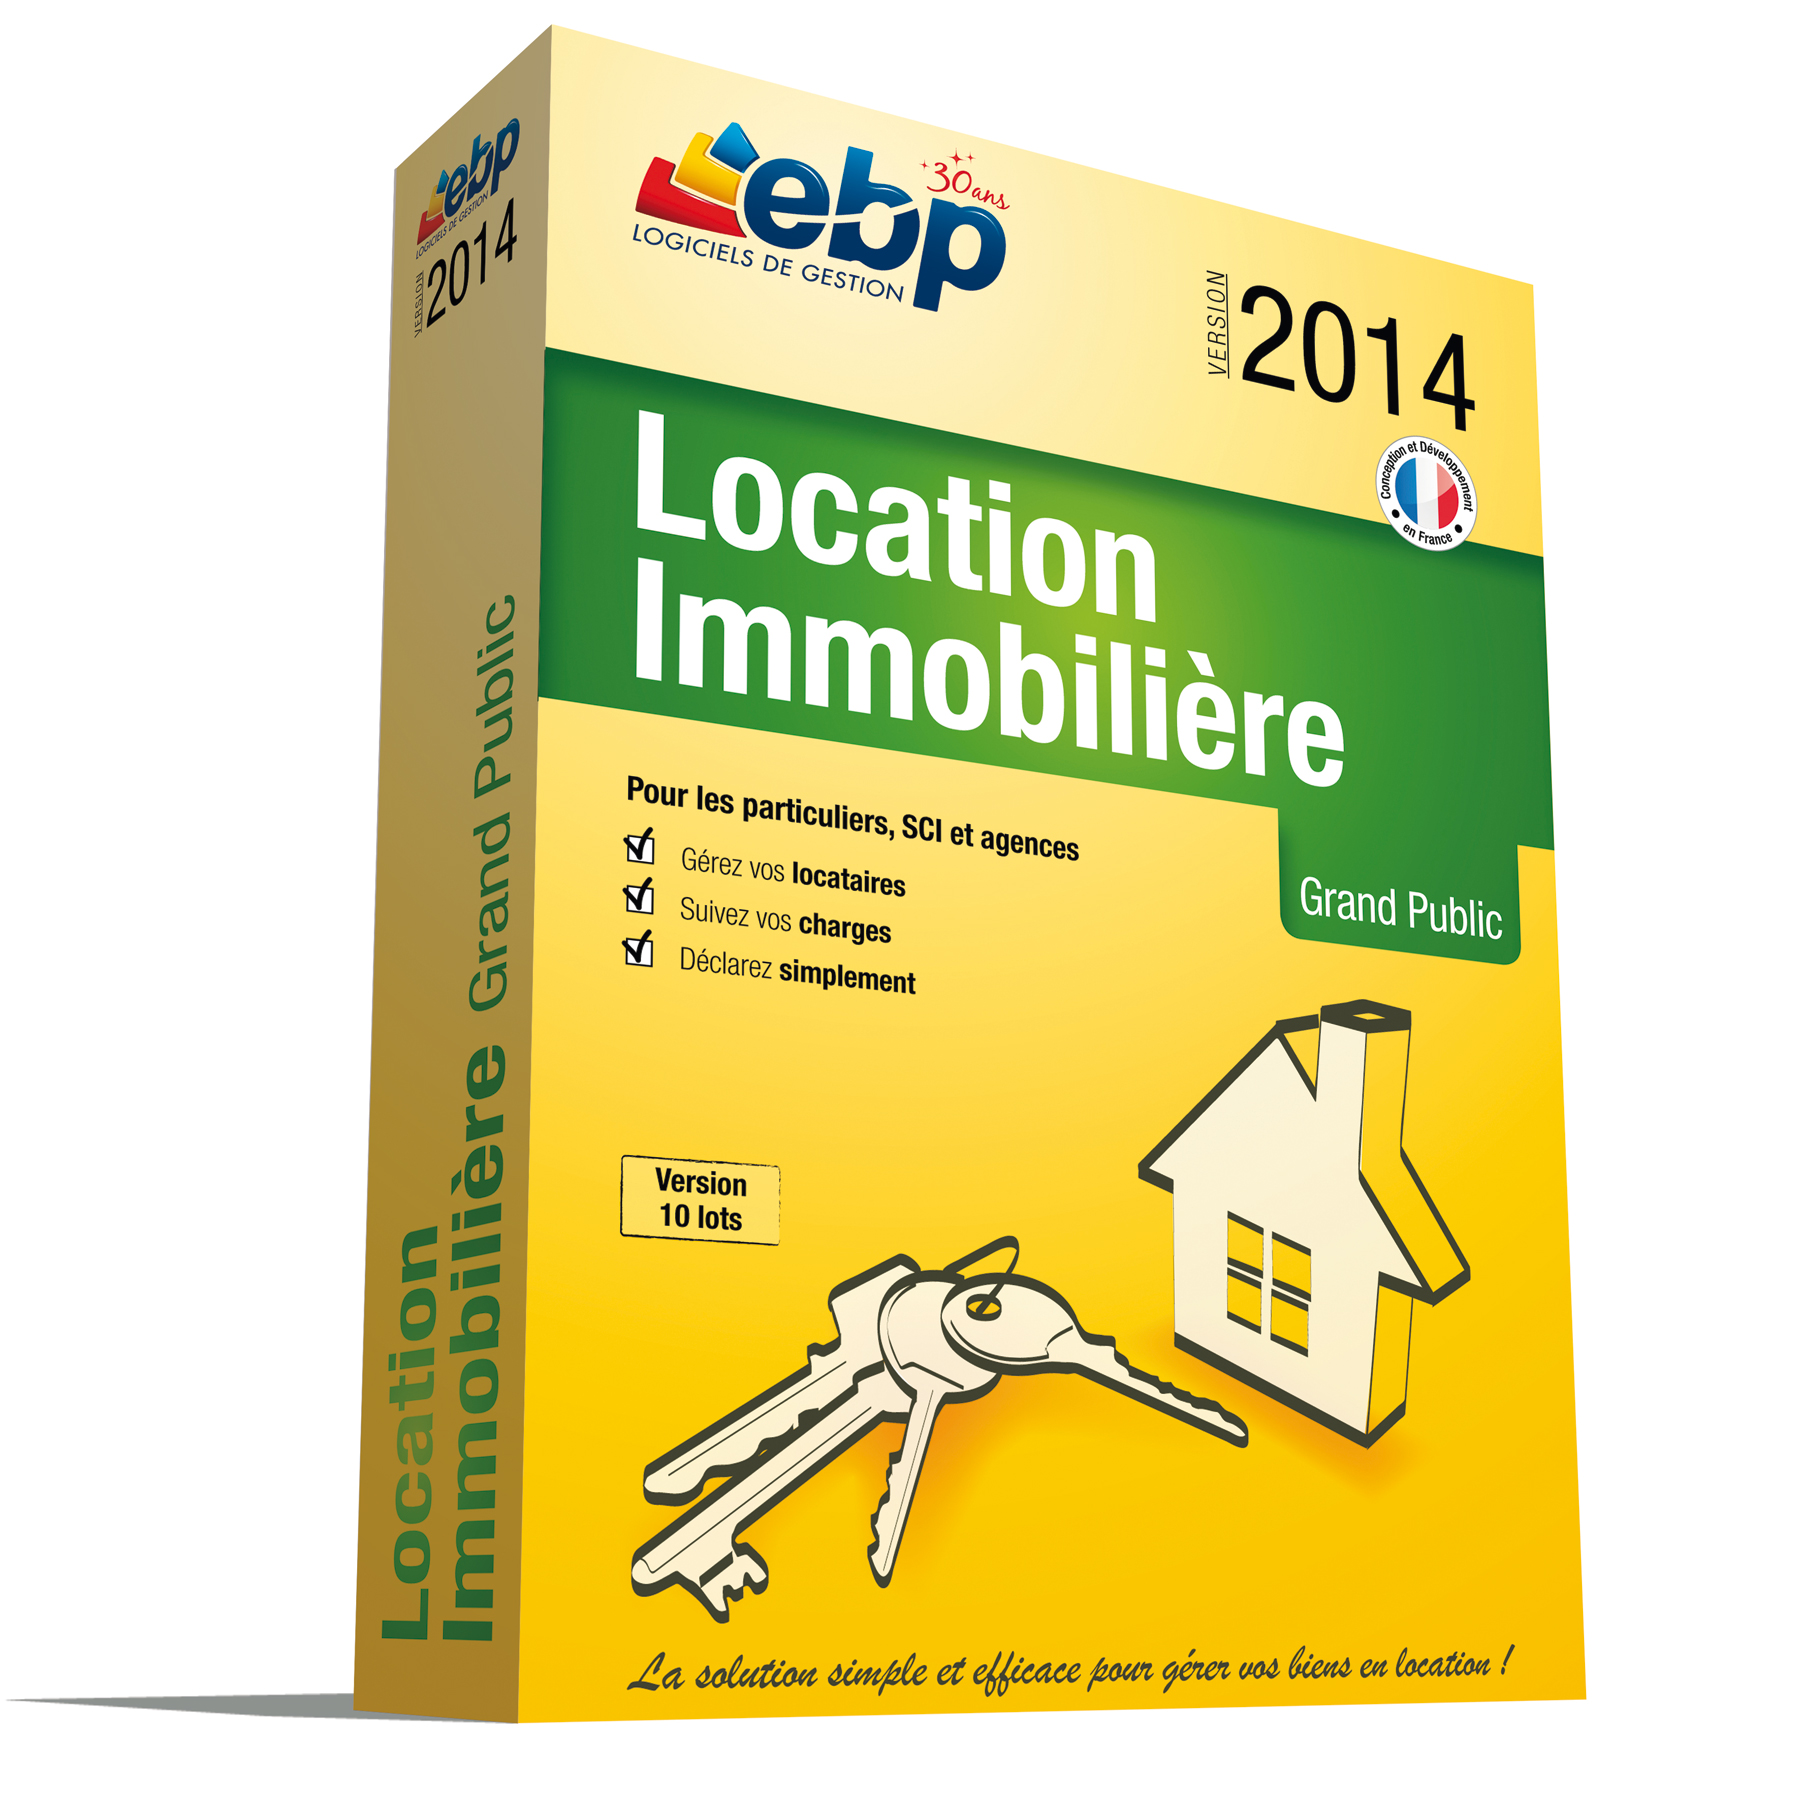 Ebp location immobili re 2014 version 10 lots 1053e060fab for Location immobiliere